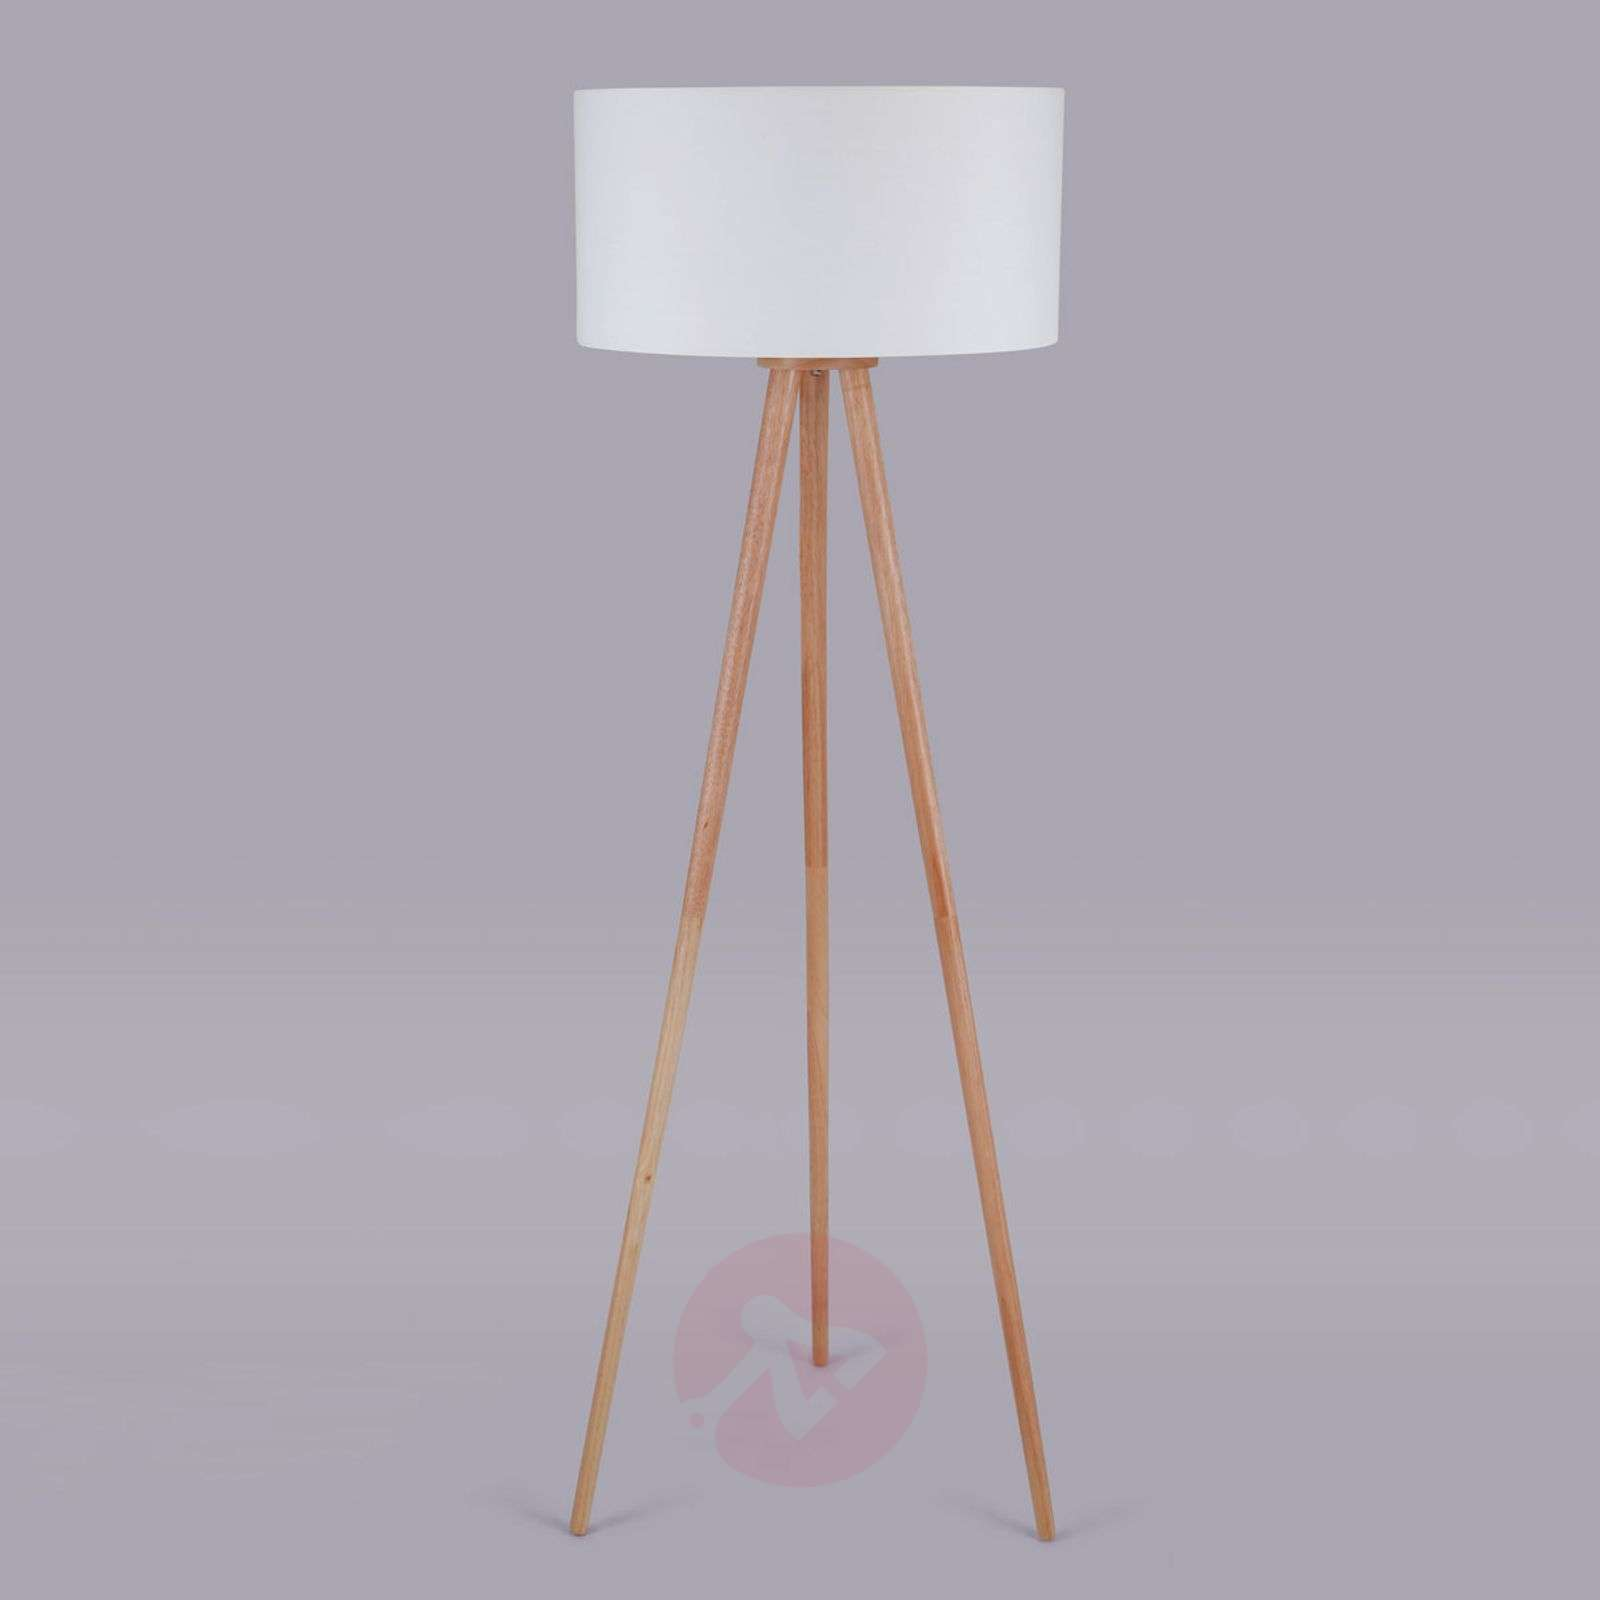 Tripod fabric floor lamp Charlia-9620799-01